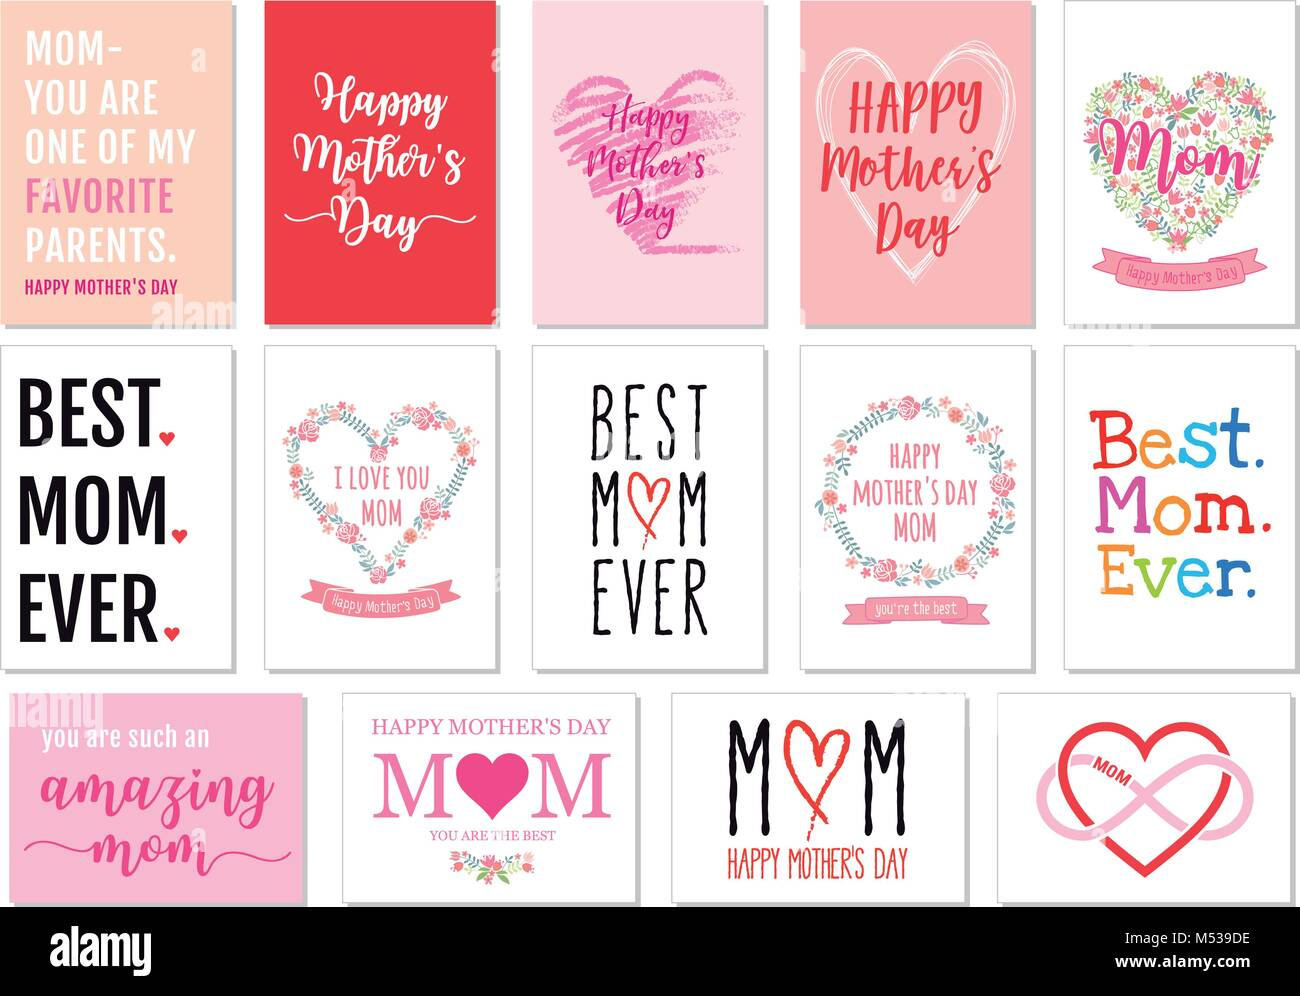 mothers day cards with hand drawn graphic design elements vector set